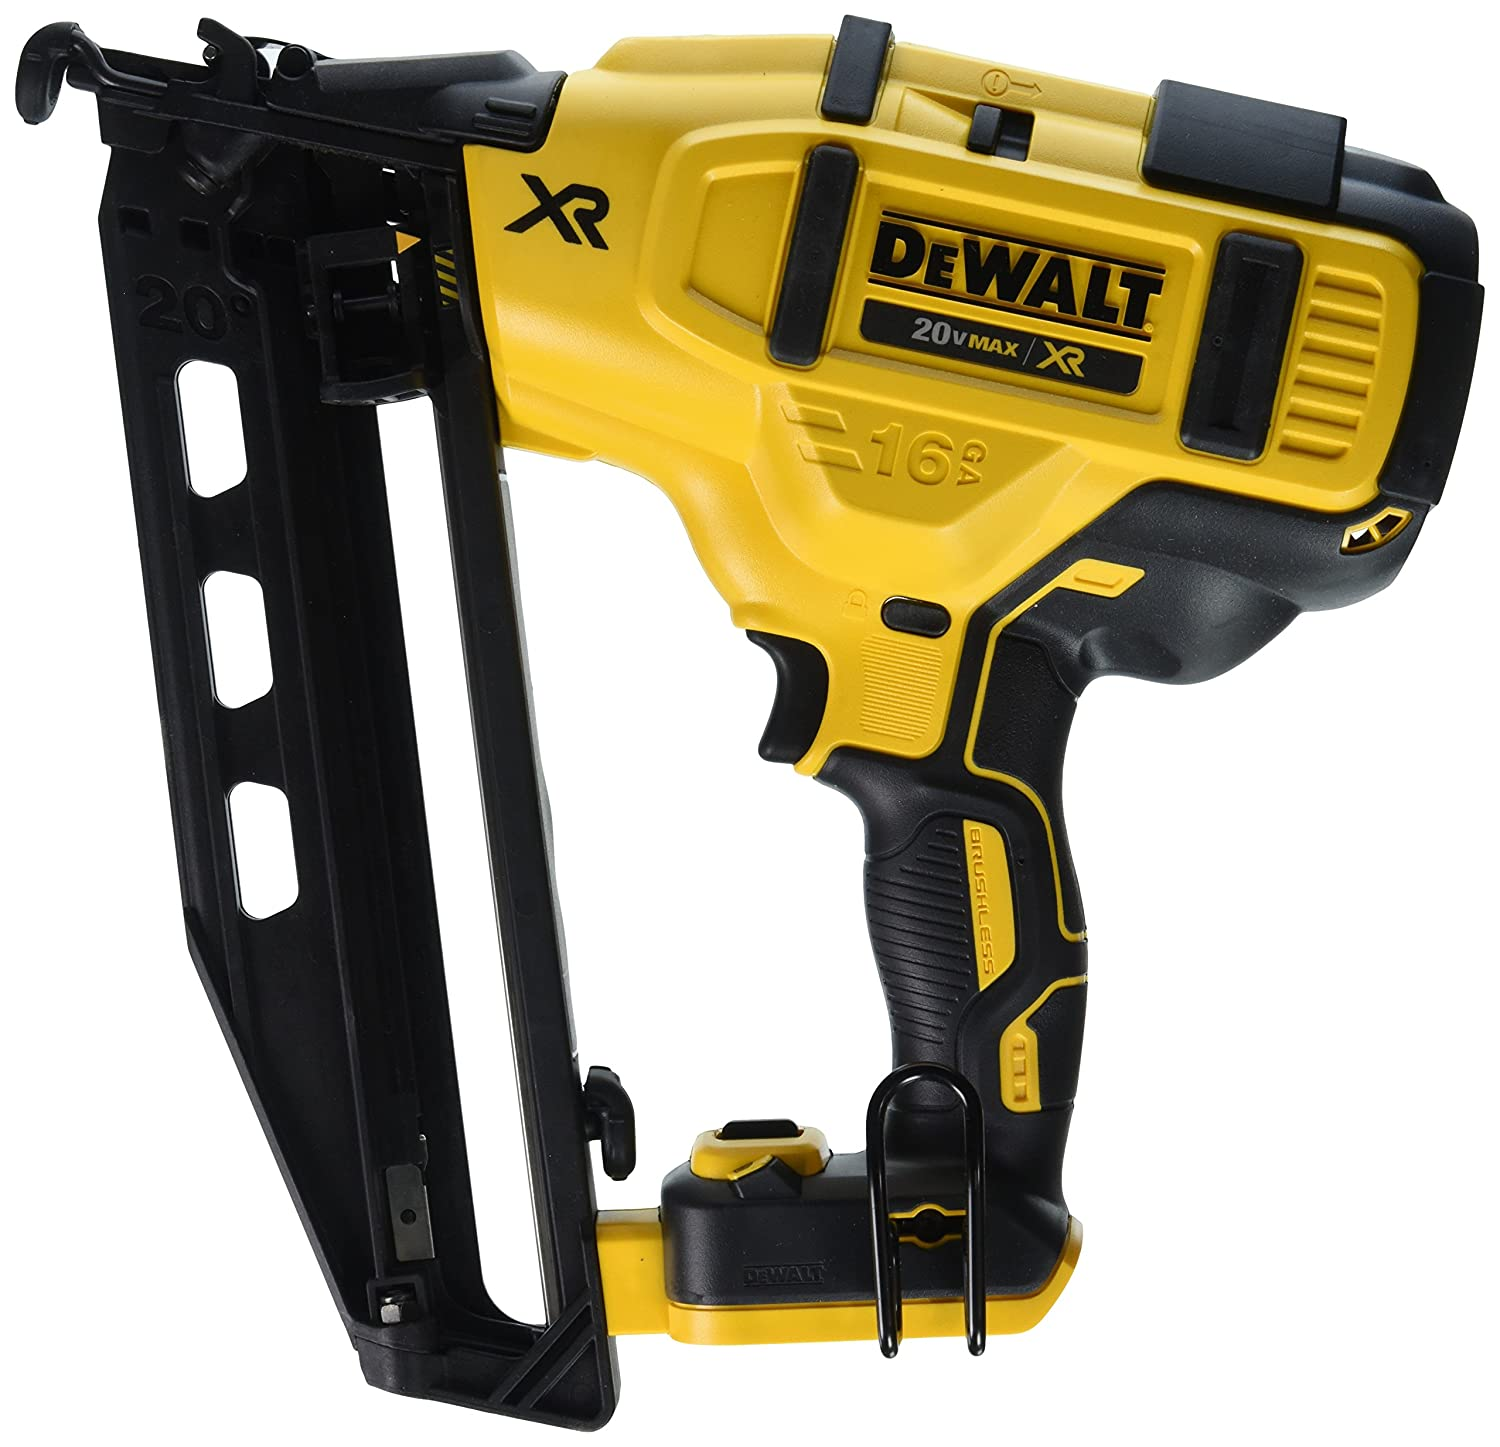 DEWALT DCN660B 20V 16 Gauge 20° Finish Nailer - - Amazon.com